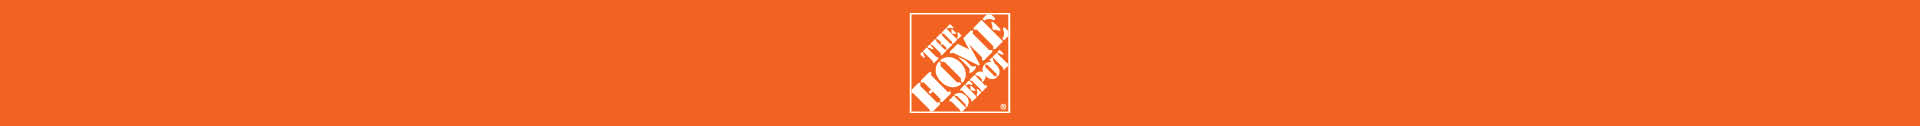 The Home Depot Moving Boxes and Kits